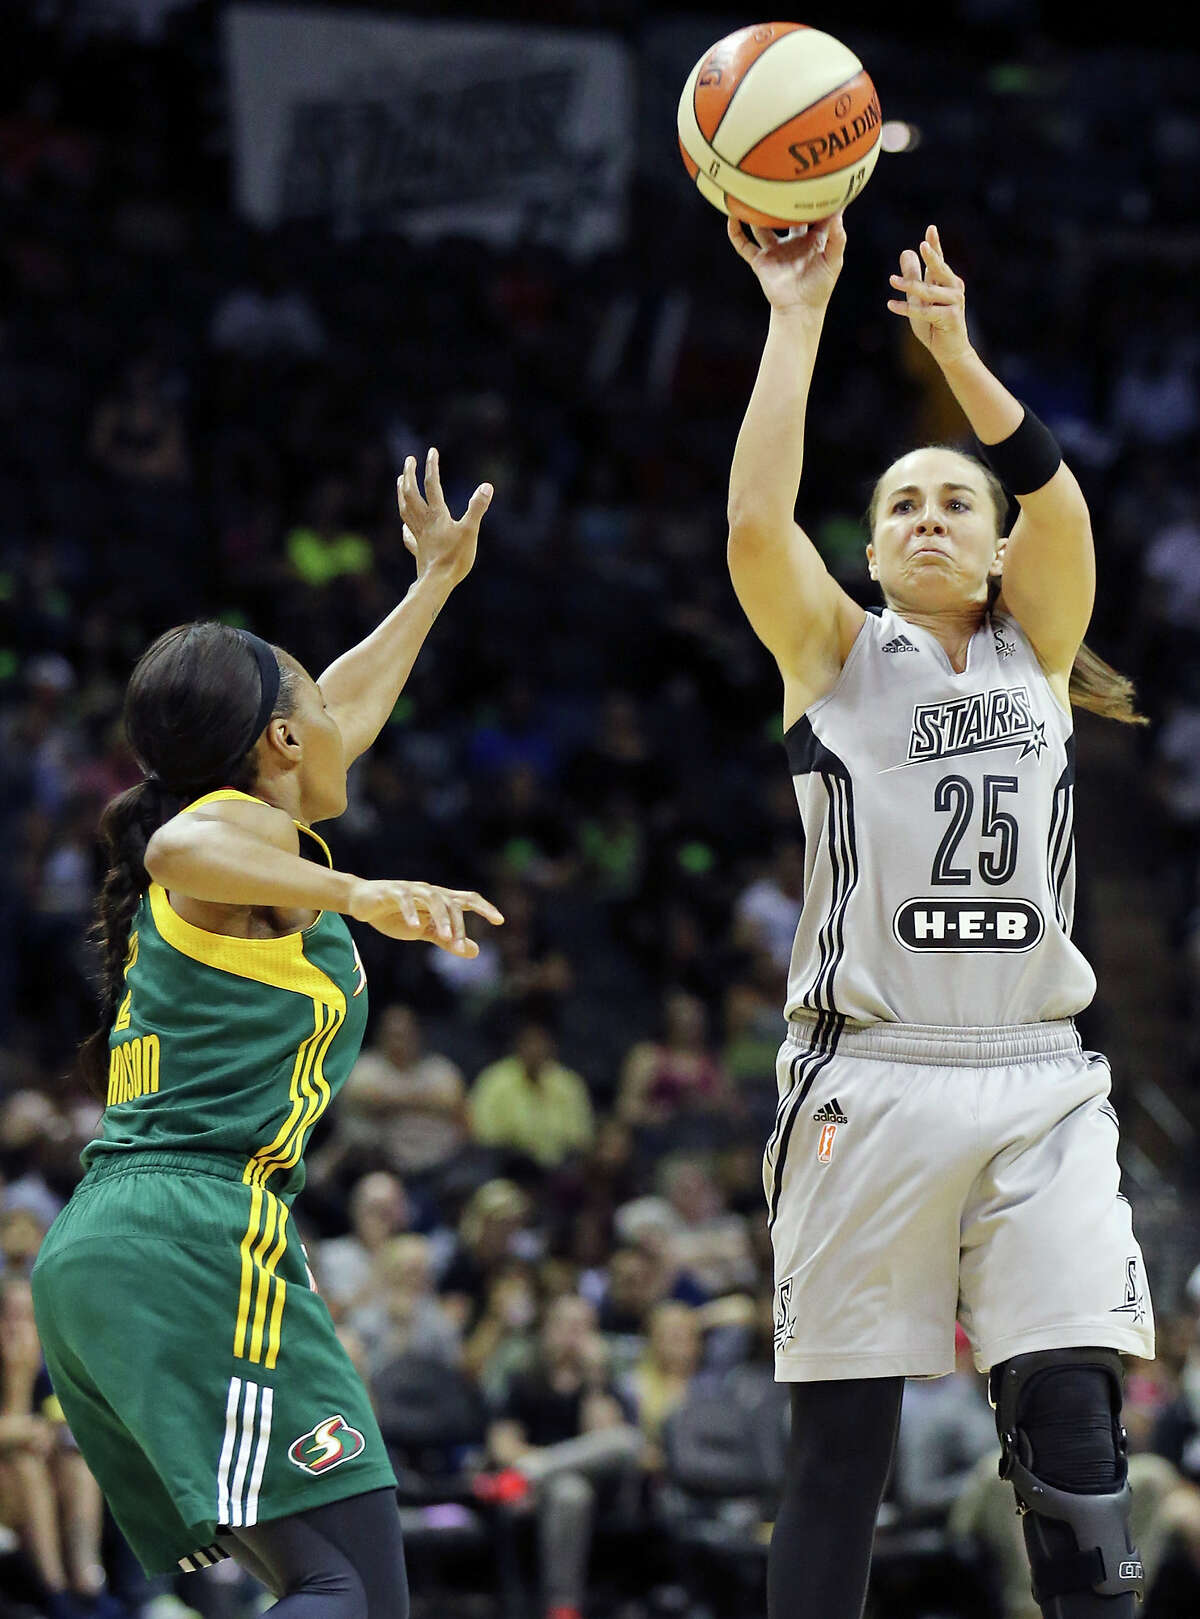 San Antonio Stars' Becky Hammon shoots around Seattle Storm's Temeka Johnson during first half action Friday July 11, 2014 at the AT&T Center.